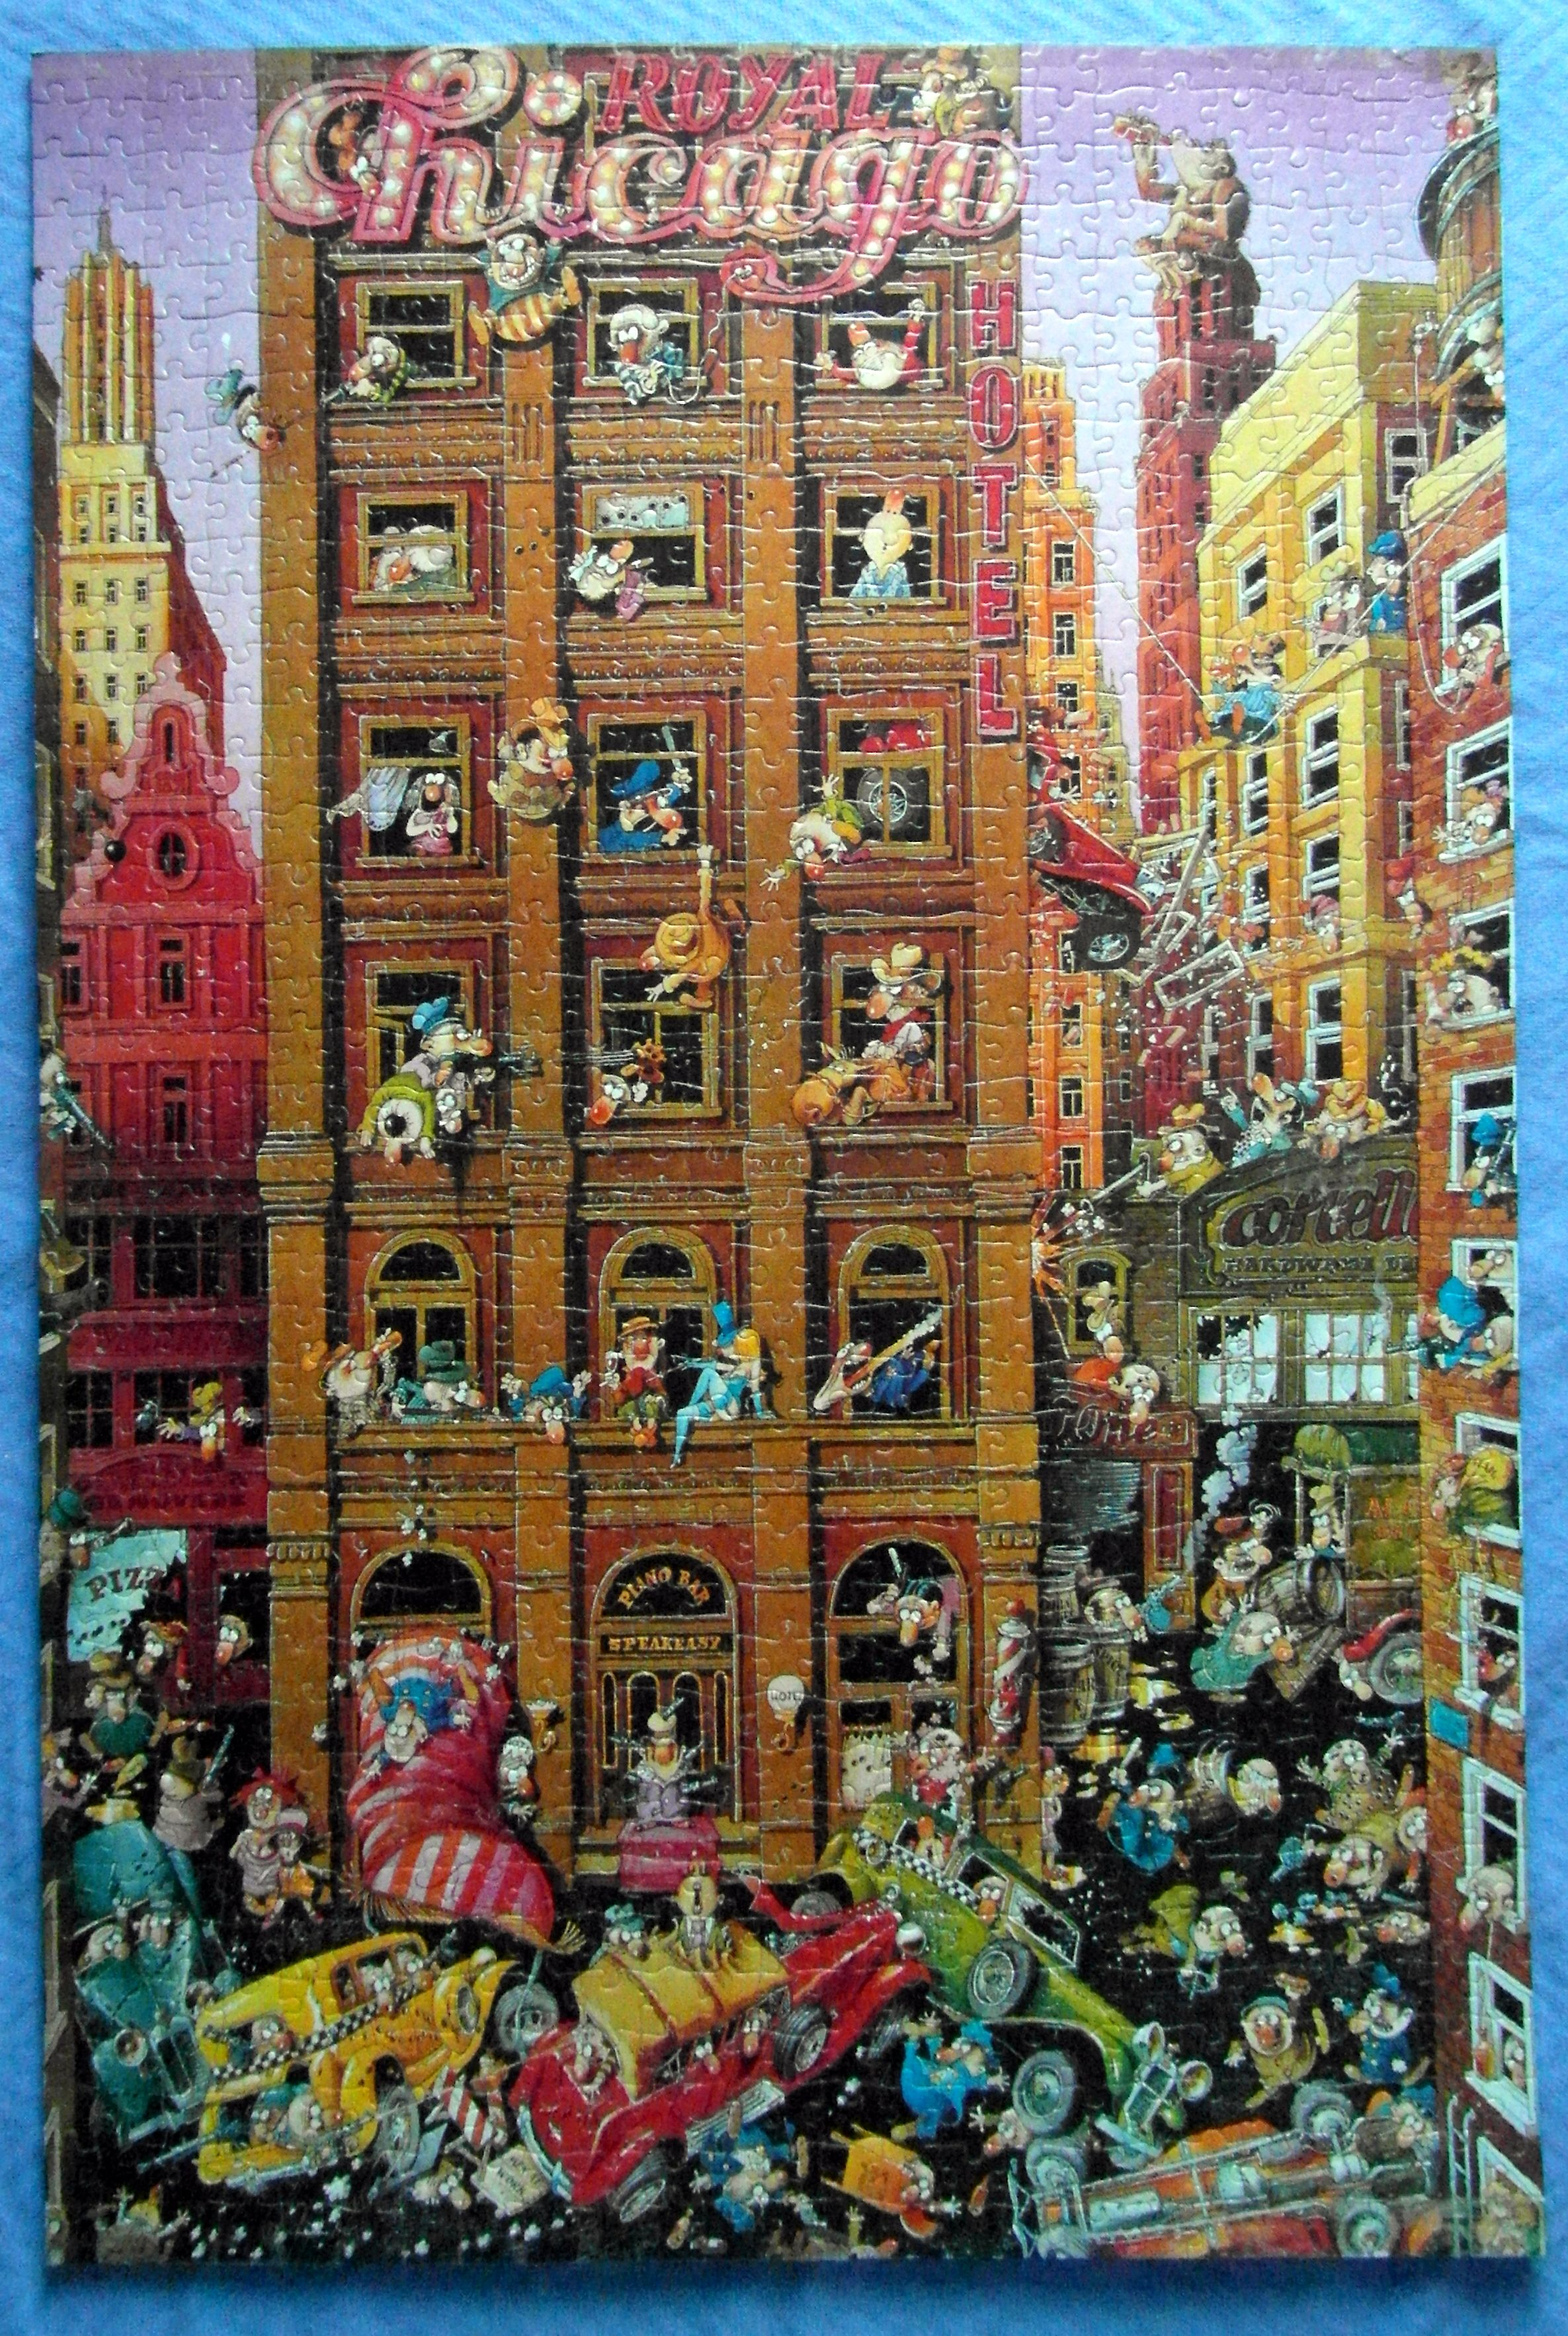 Done Loup S Chicago 1500 Piece Puzzle From Heye 1500 Piece Puzzles Poster Art Puzzle